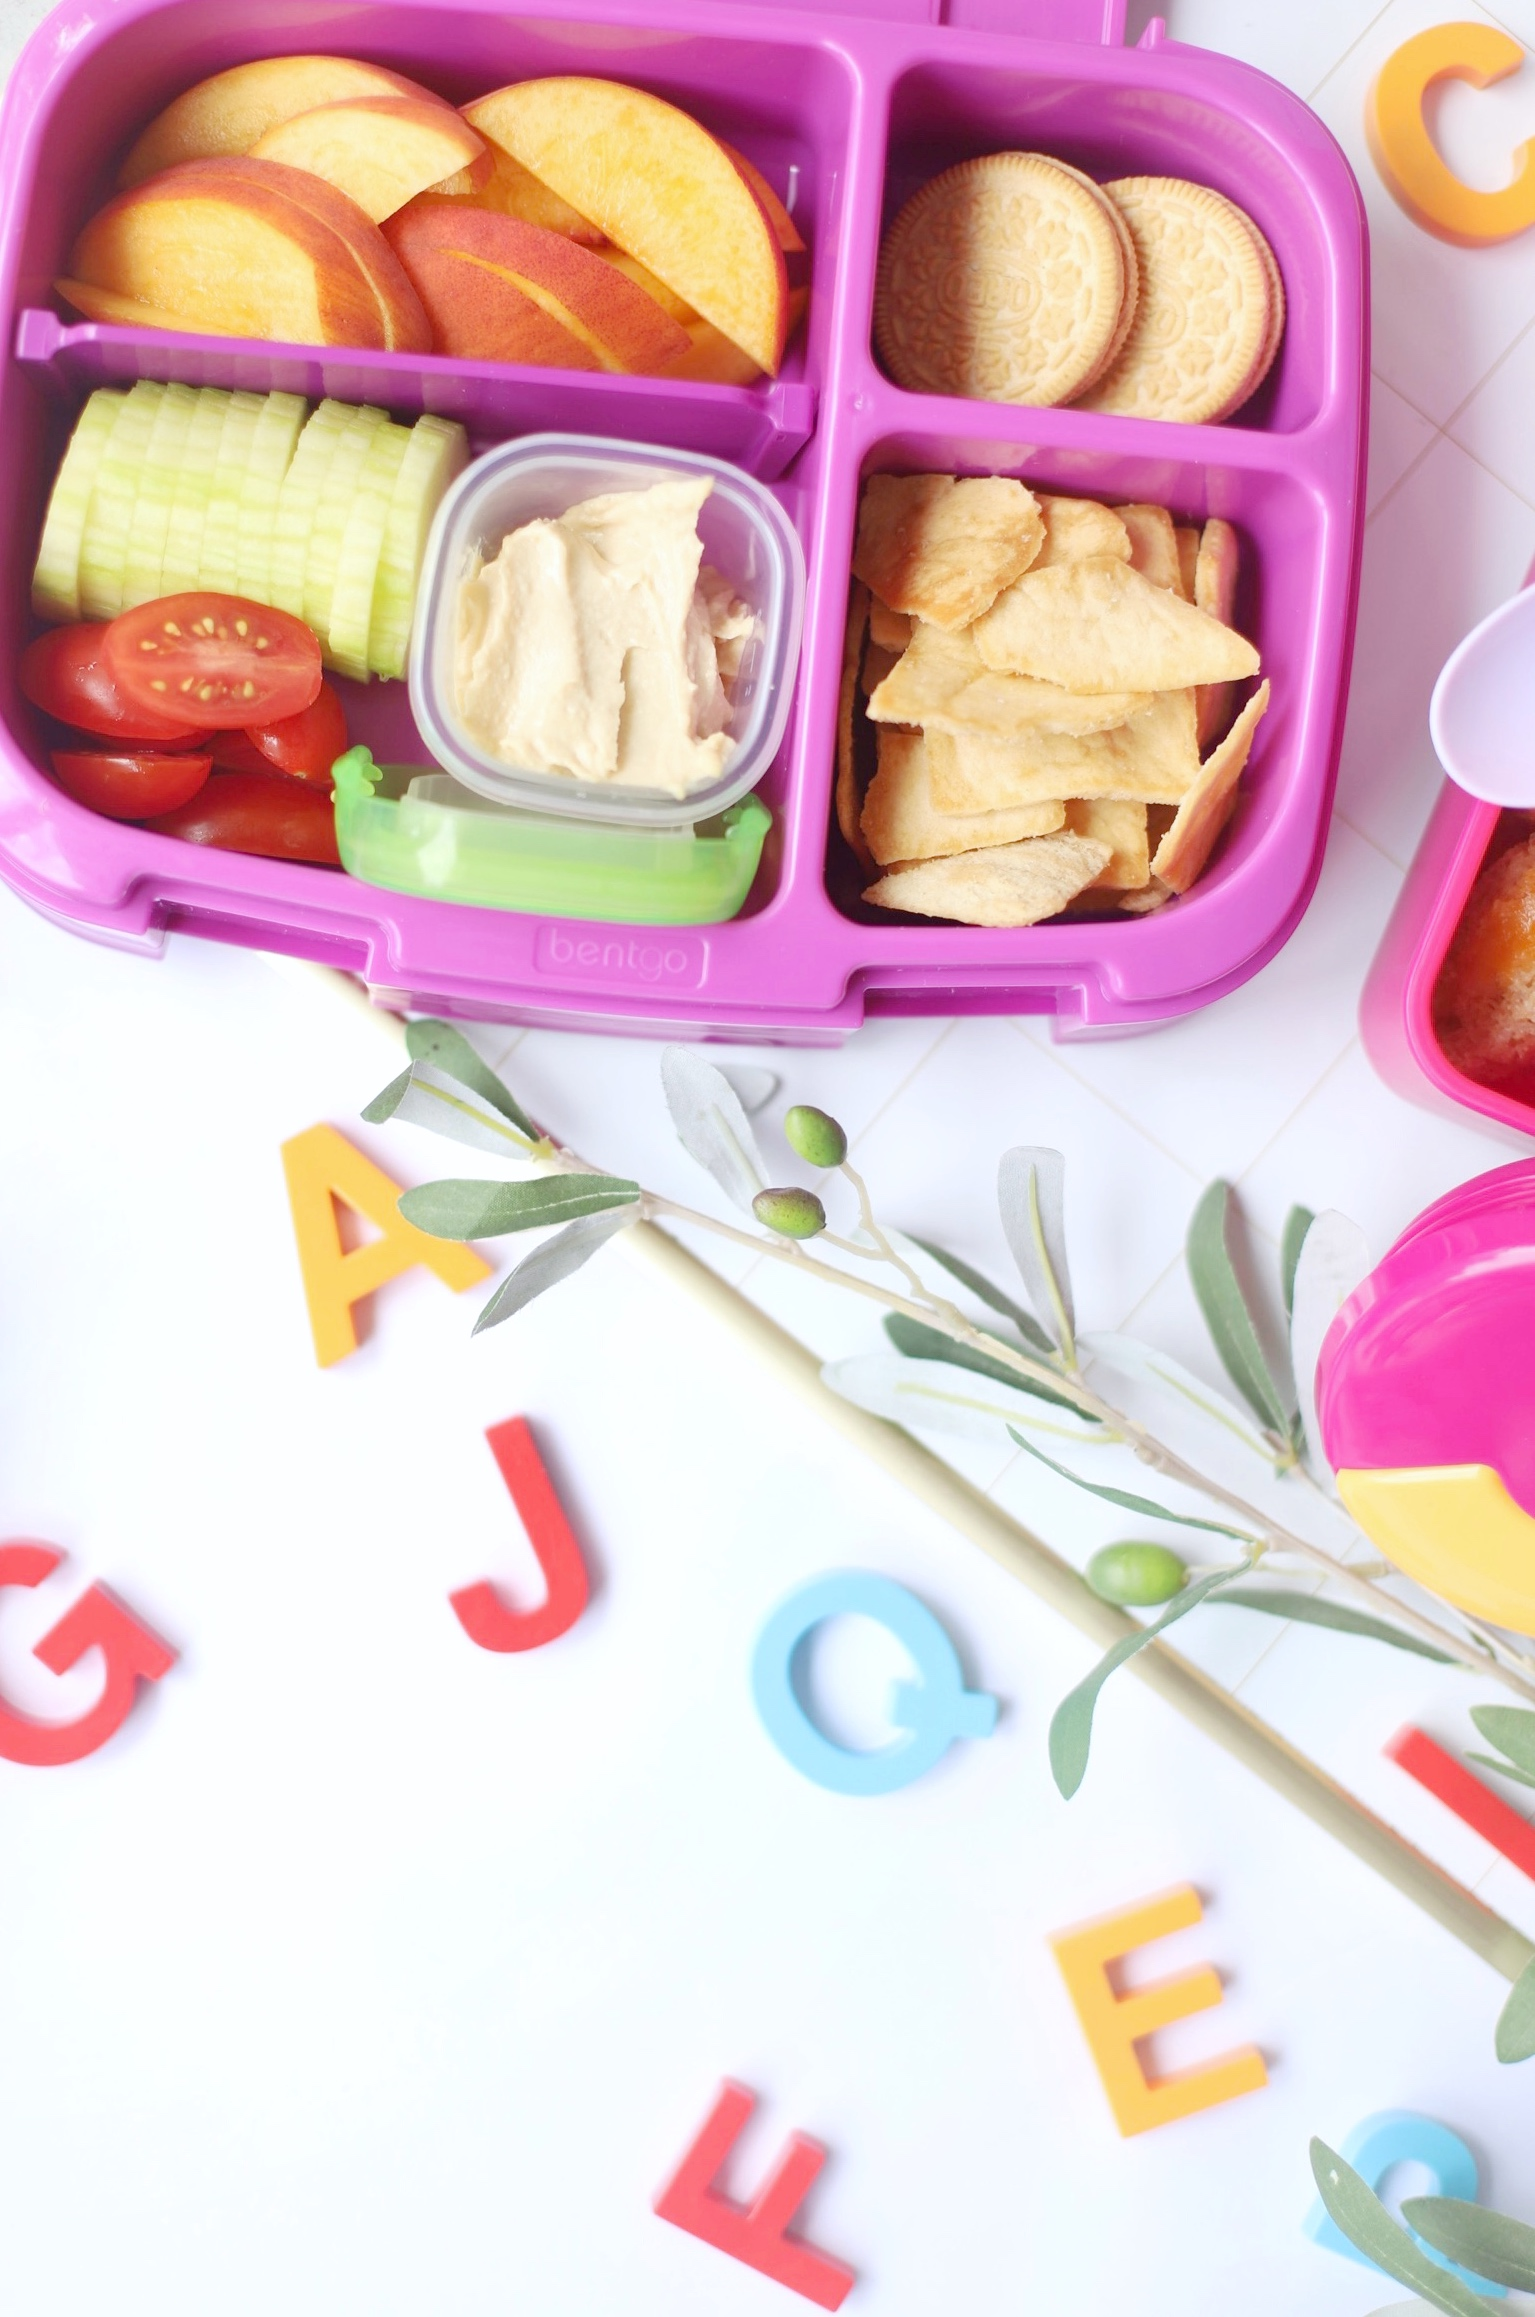 a lunch kit with crackers and tomatoes and apples